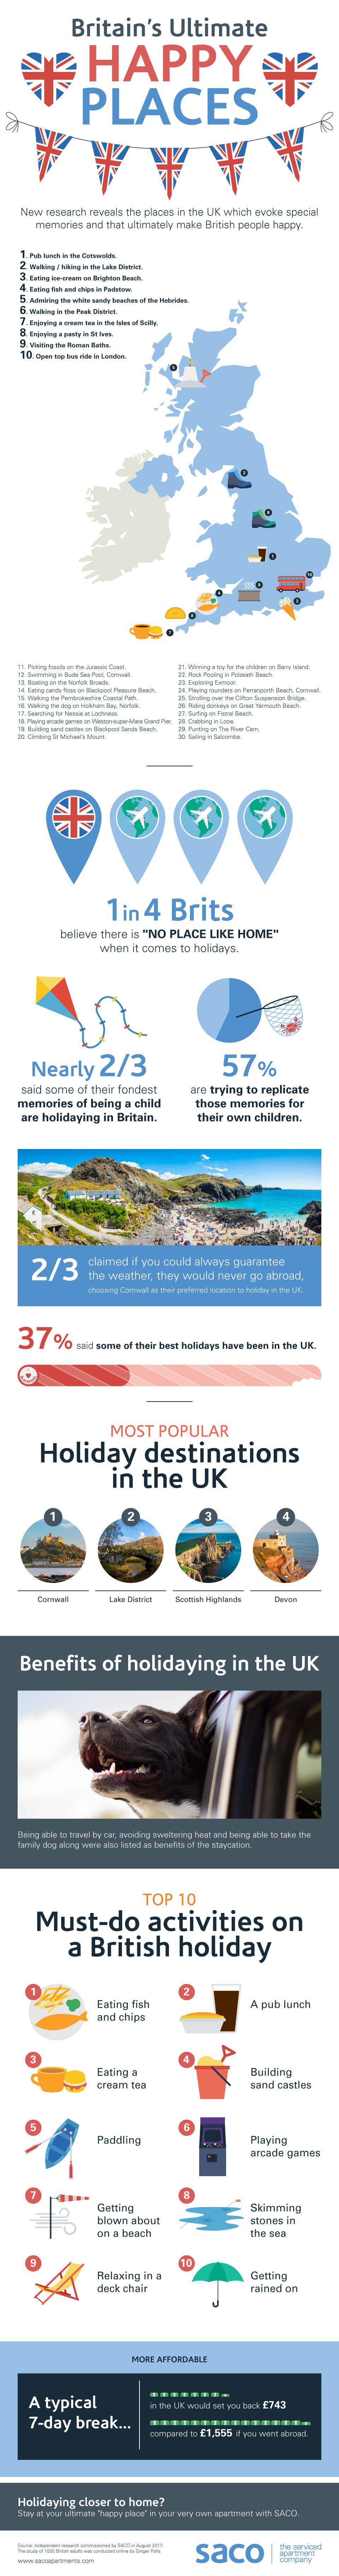 saco-happy-places-in-britain.png